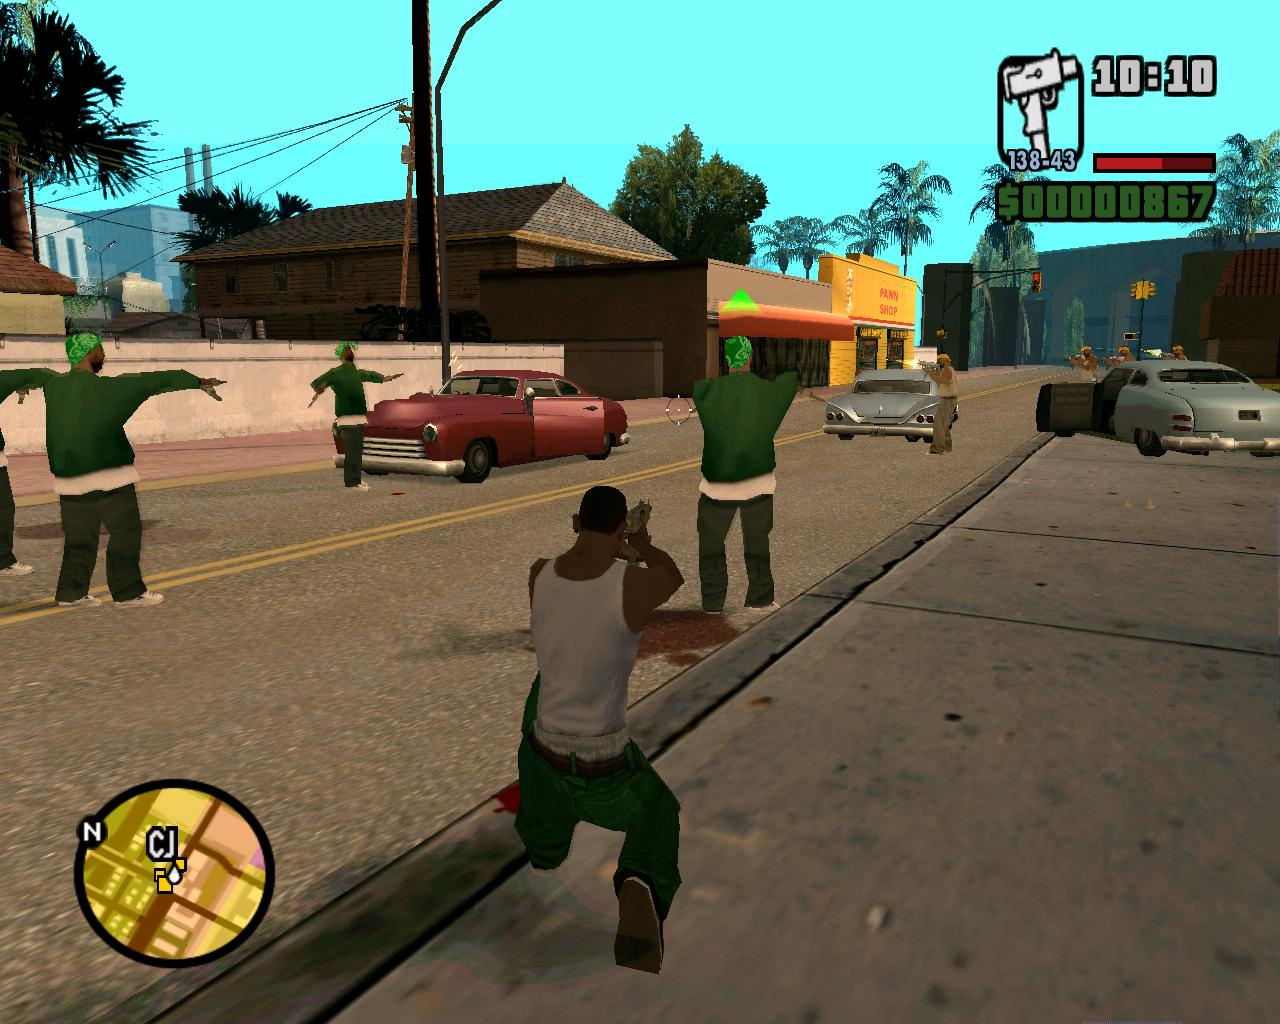 gta-san-andreas-strip-cheats-photos